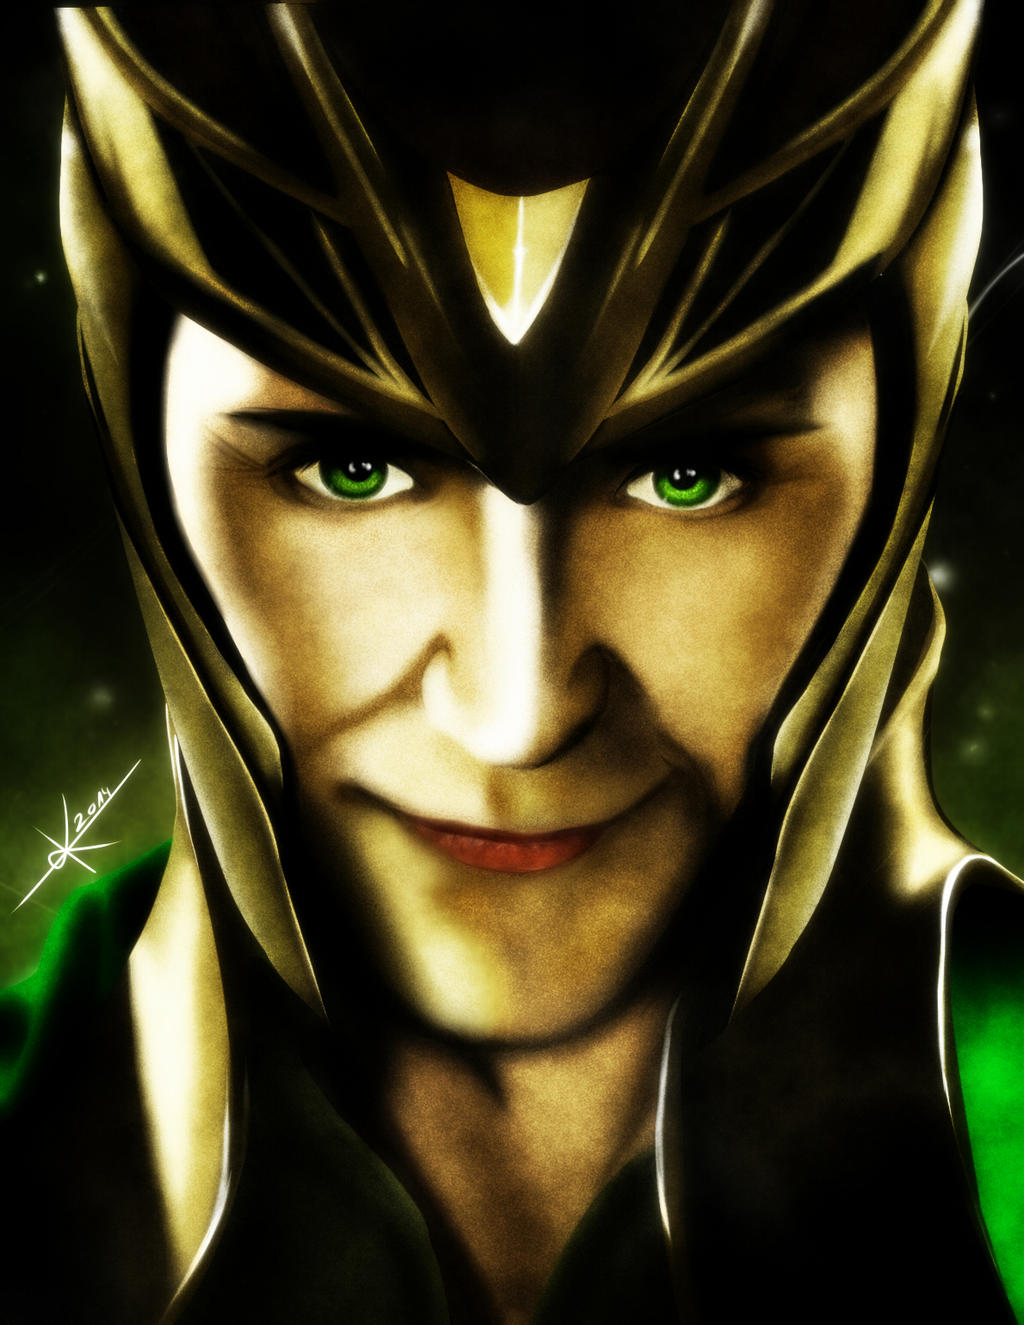 Loki - God of Mischief by 0-Marimo-0 on DeviantArt